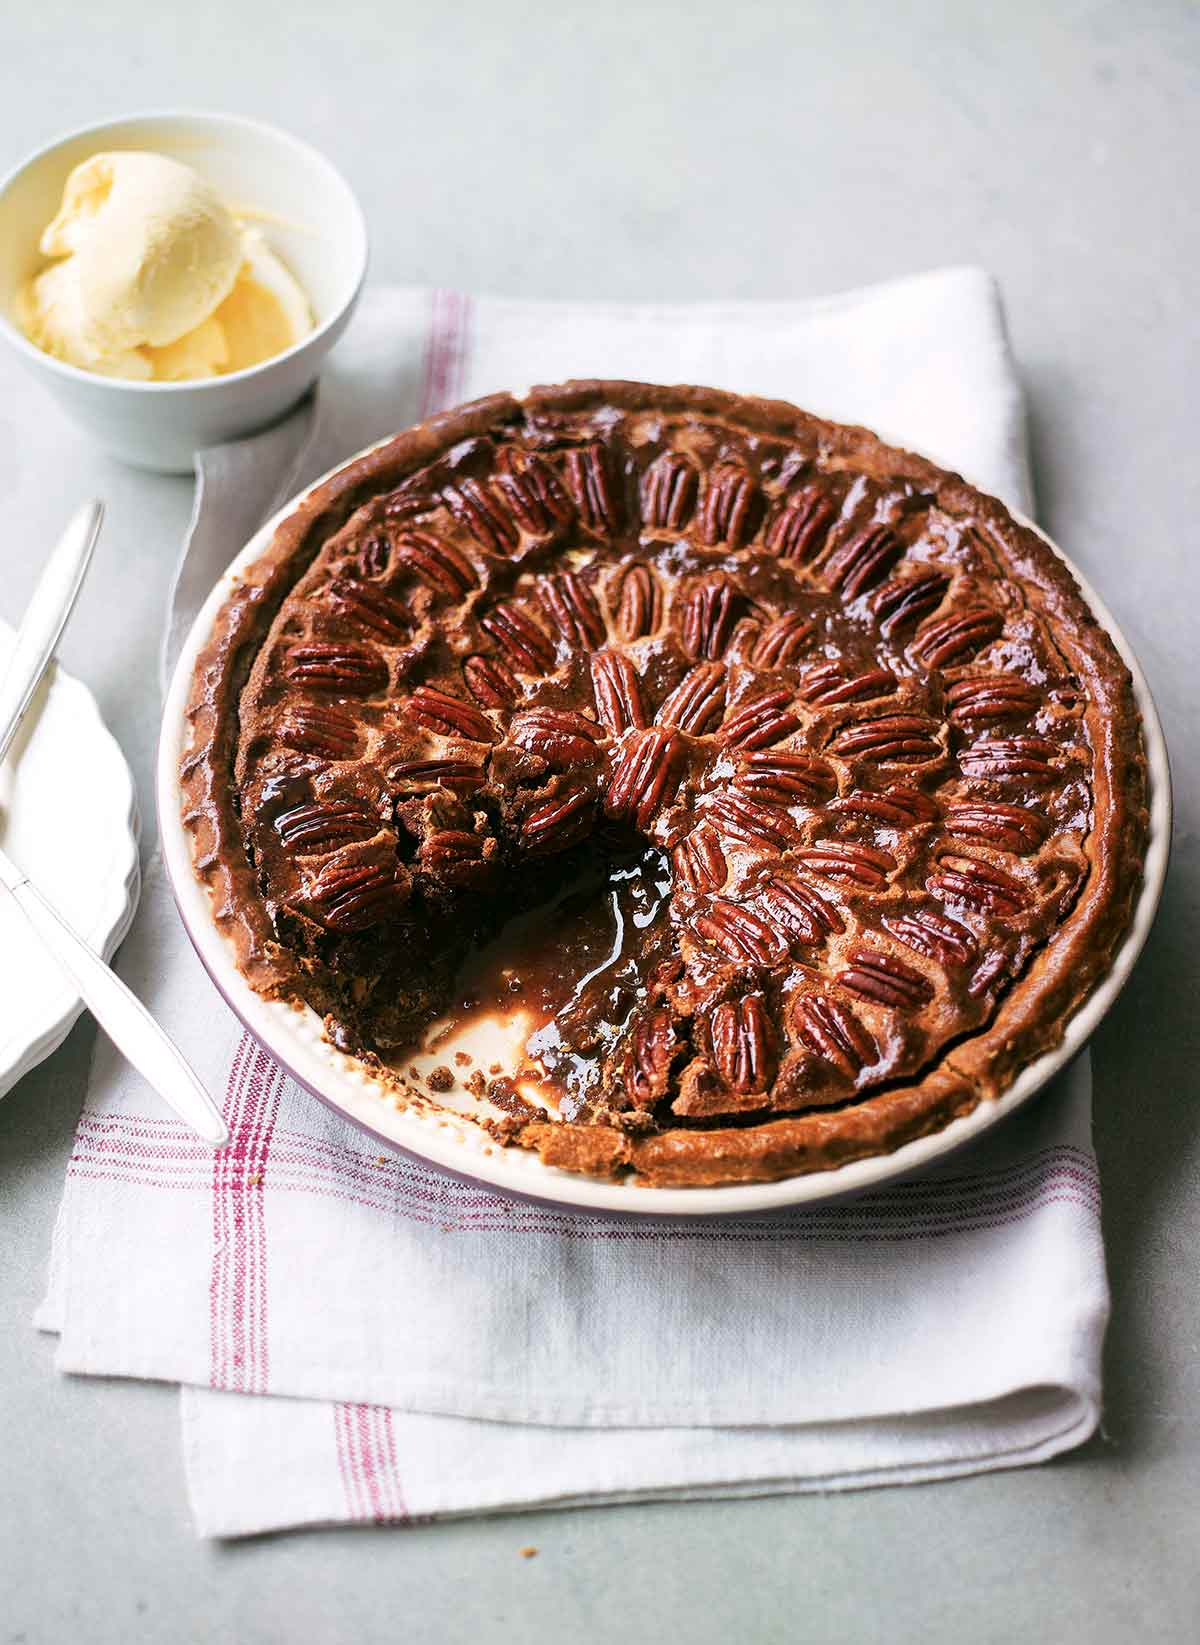 A chocolate pecan pie in a ceramic pie plate with one slice missing on a linen napkin.